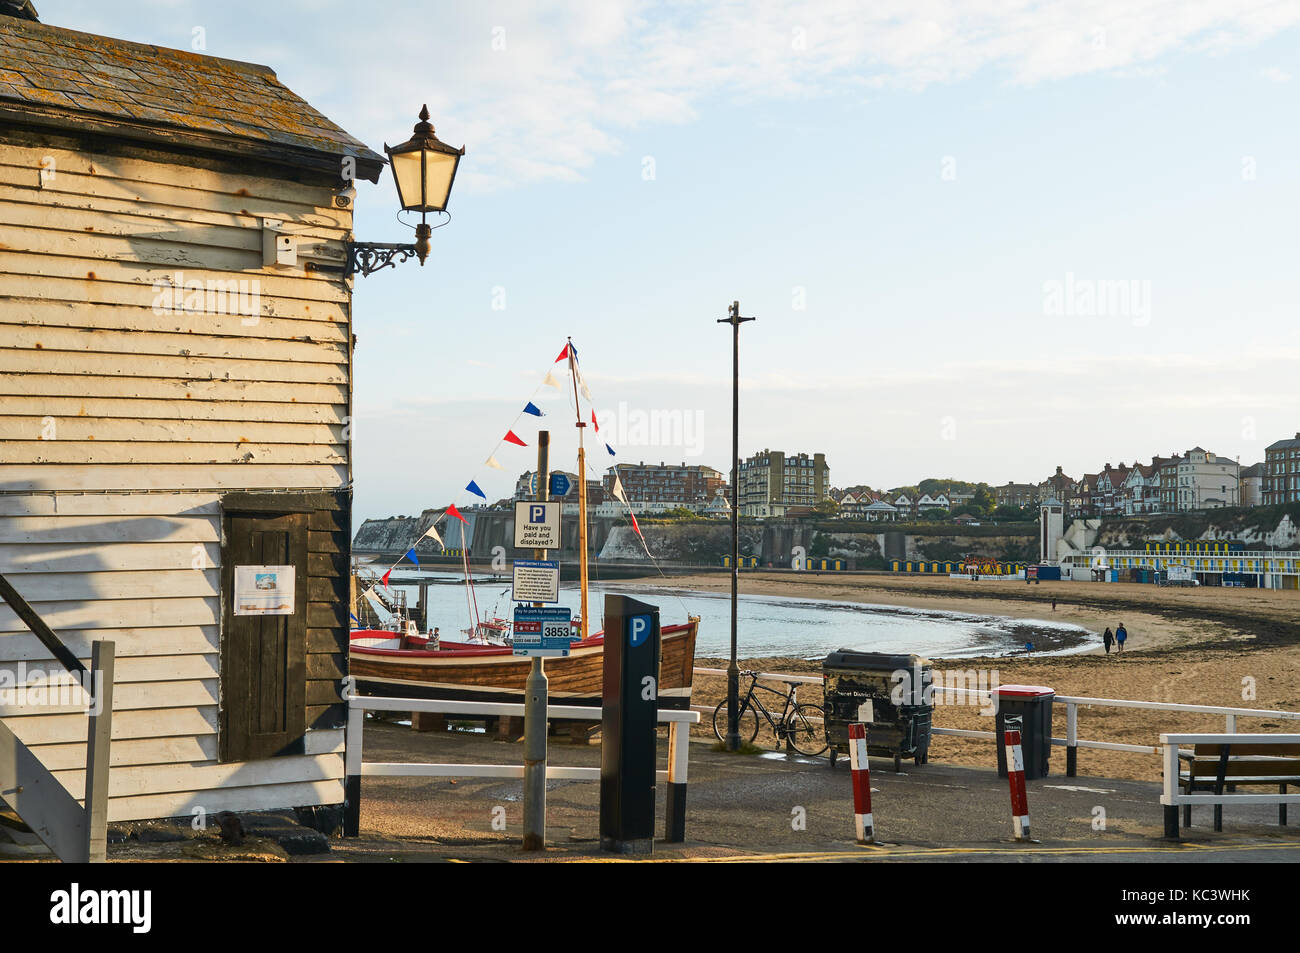 Broadstairs Harbour on the East Coast, Thanet, East Kent, UK - Stock Image